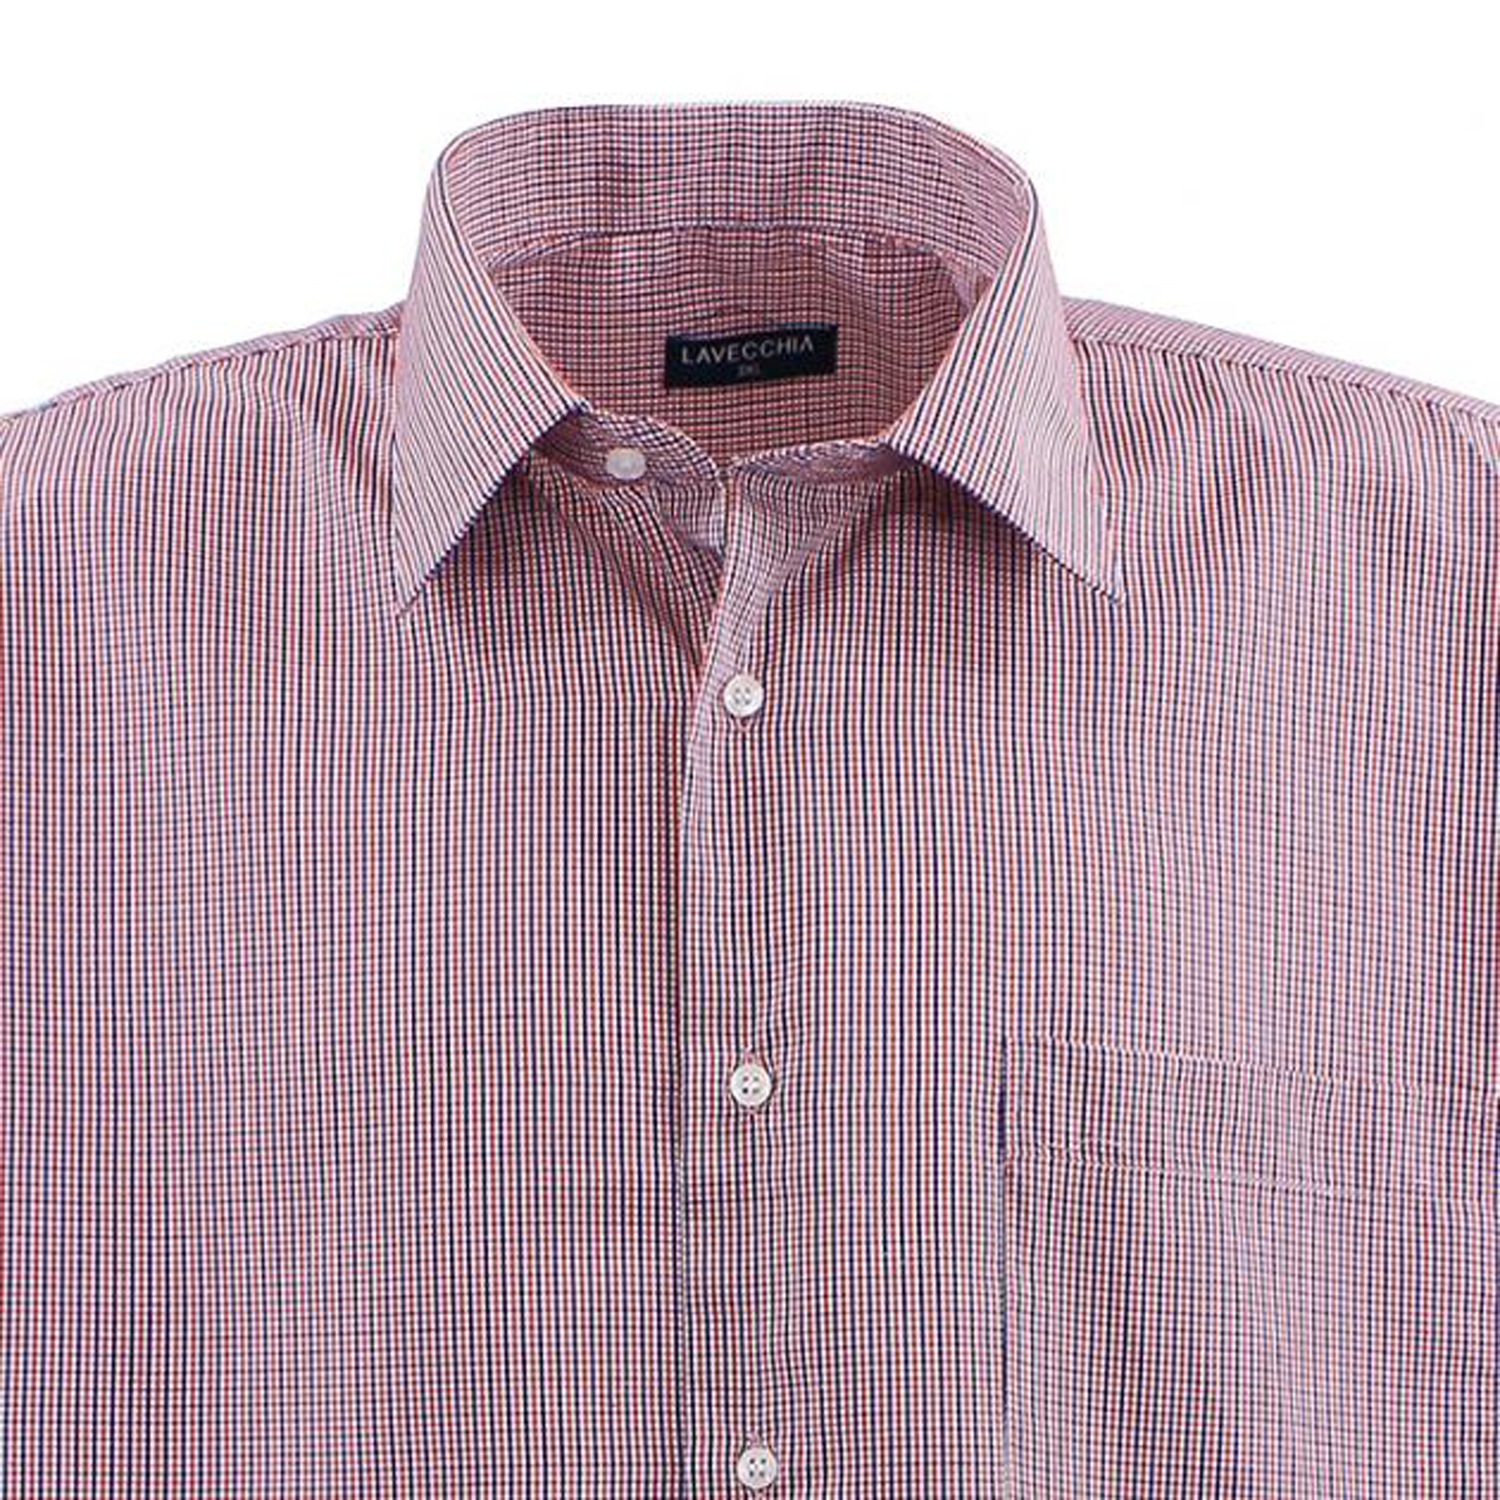 Detail Image to Checked shirt red/white/navy by Lavecchia in king sizes up to 7XL